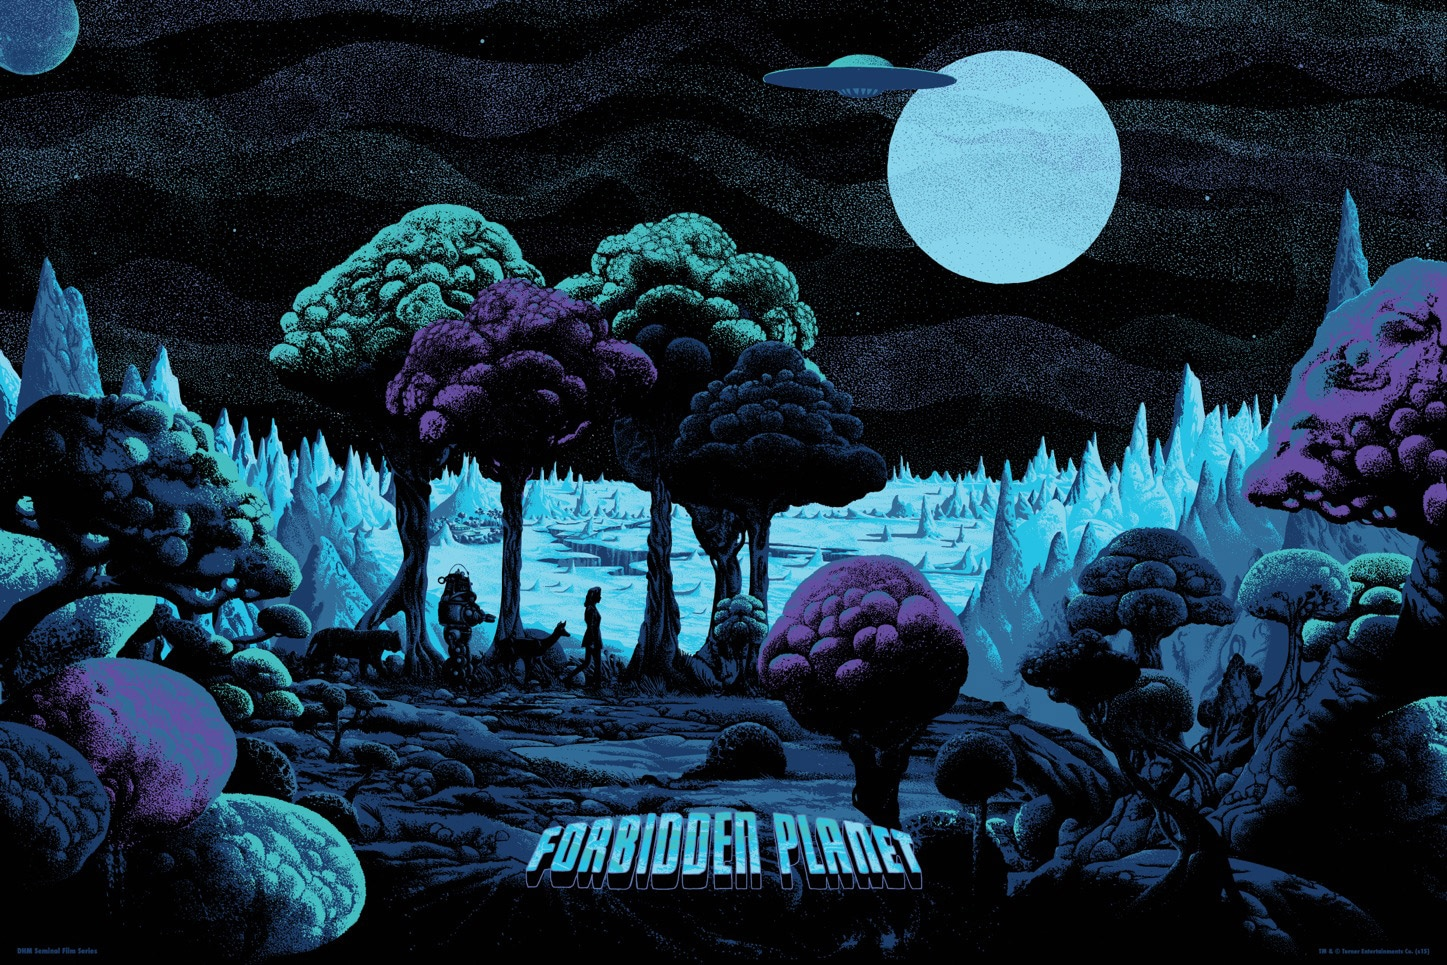 Forbidden Planet Variant Print By Kilian Eng